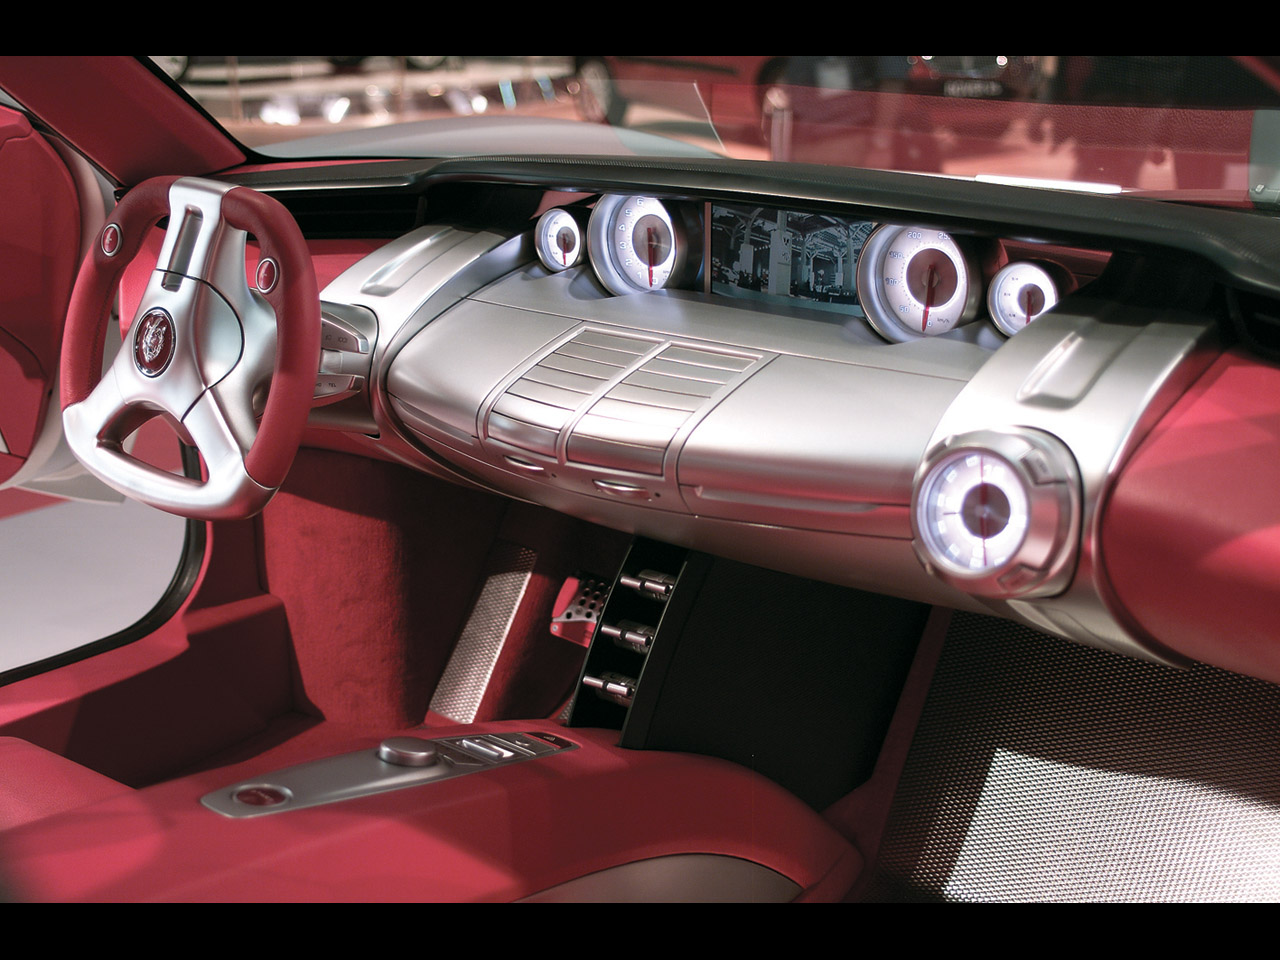 Fuore Jaguar XF10 photos - PhotoGallery with 10 pics ...